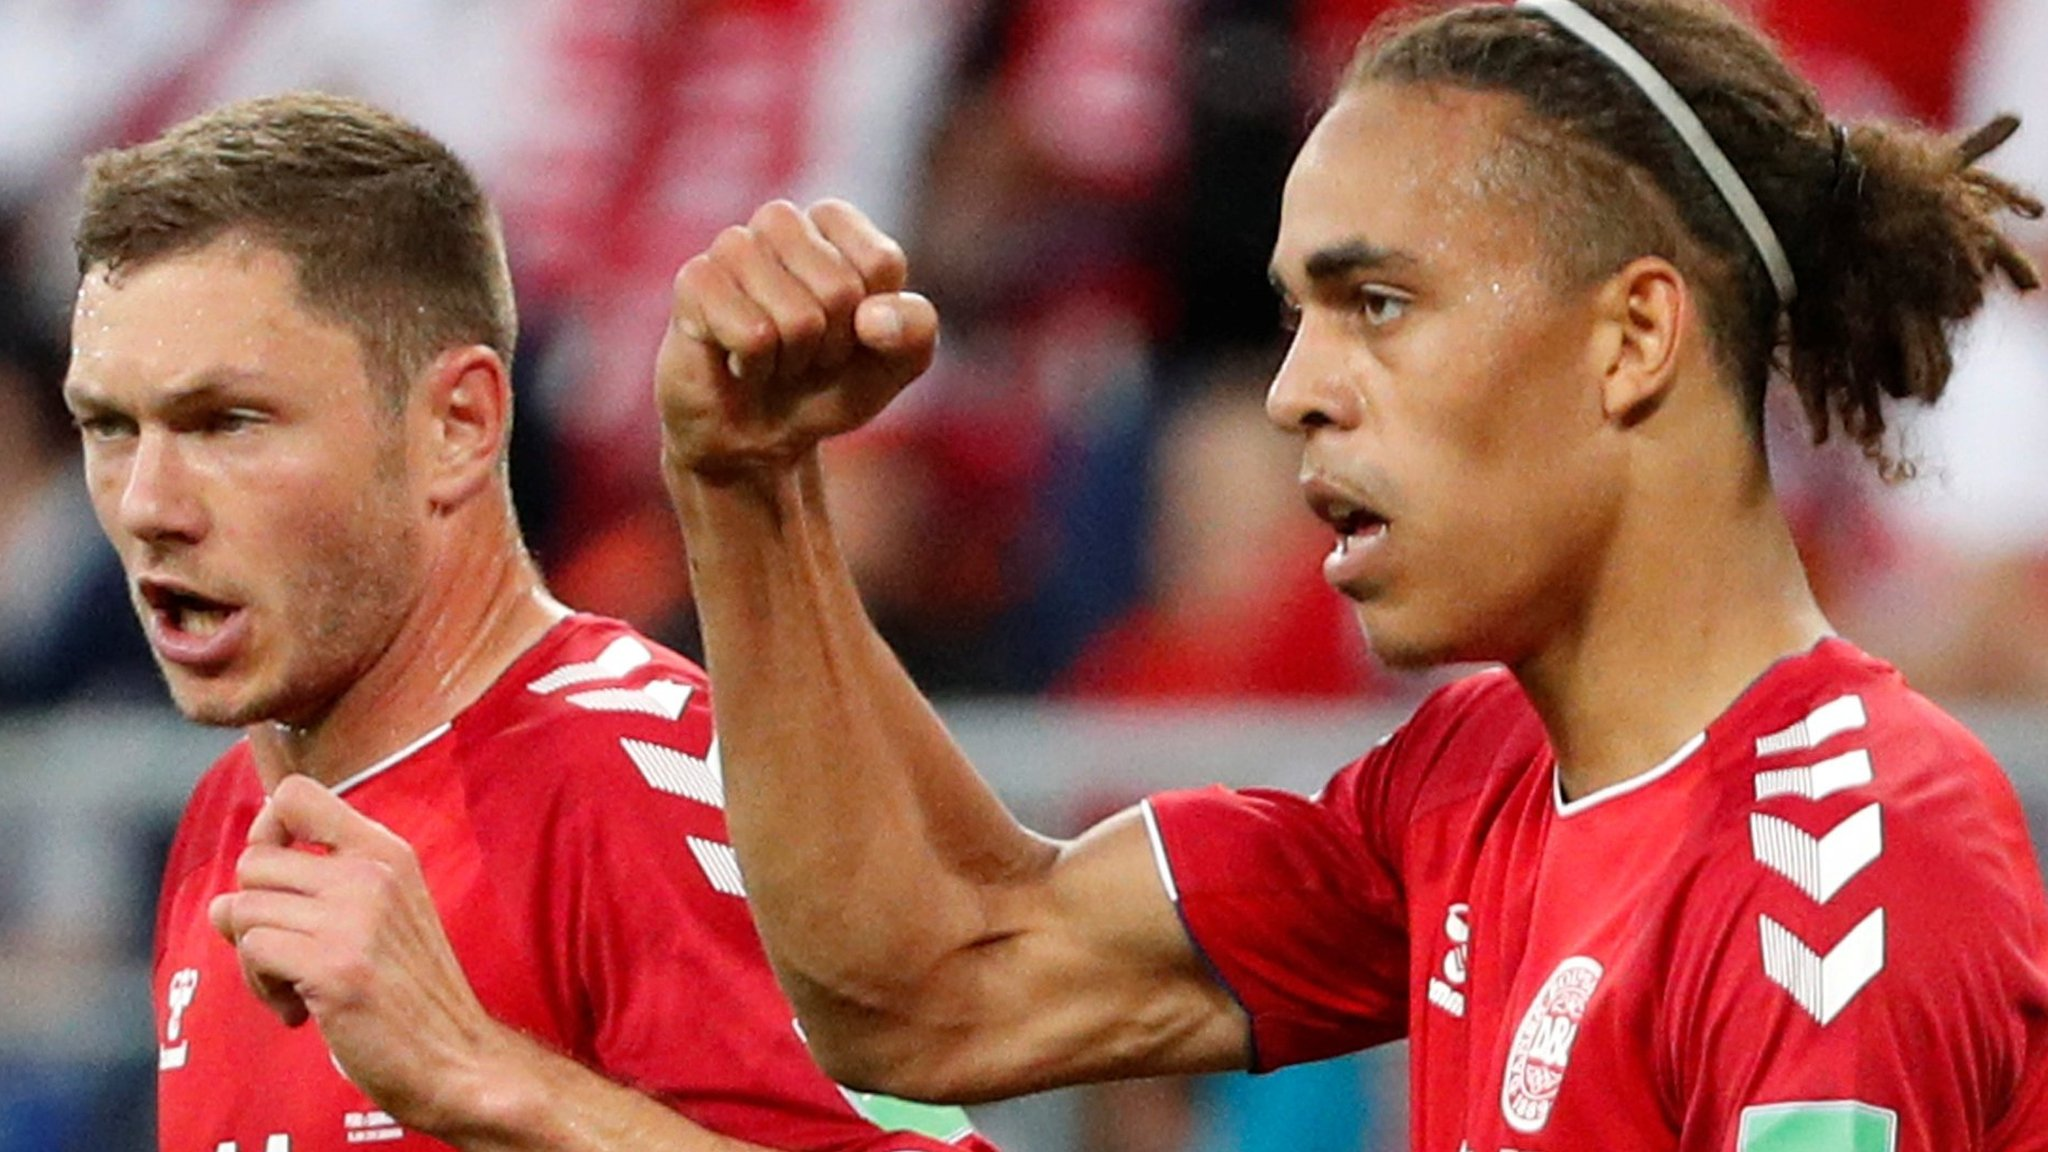 World Cup 2018: Denmark secure a hard-fought 1-0 win over Peru